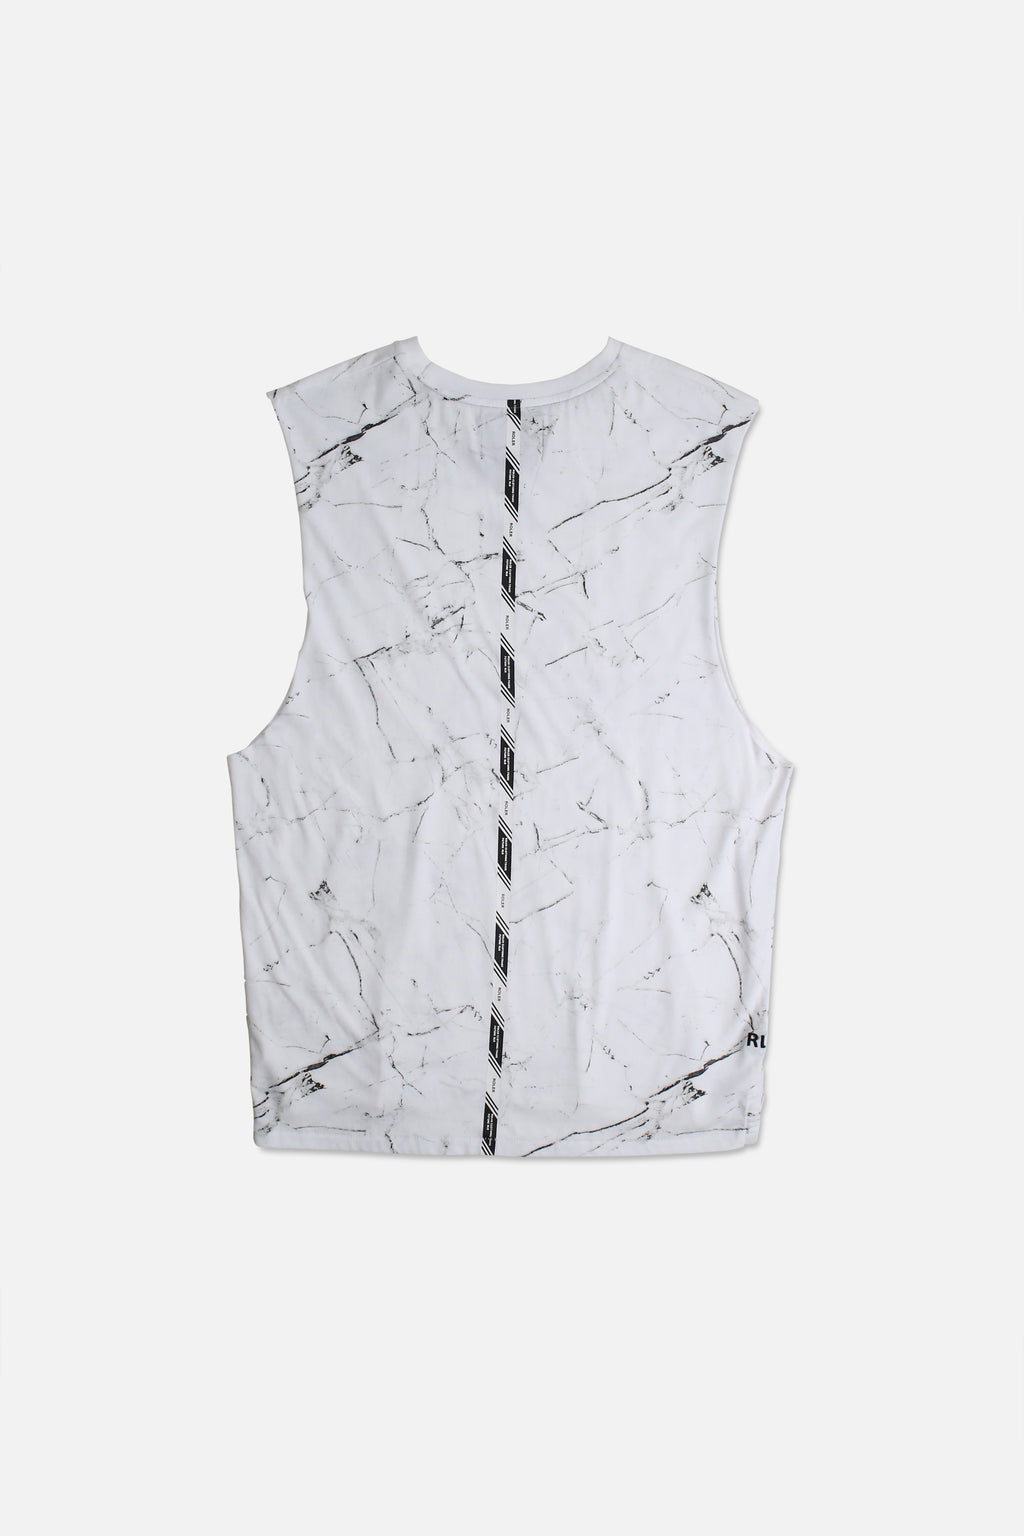 The Haviland Muscle - Marble White - Roler Clothing